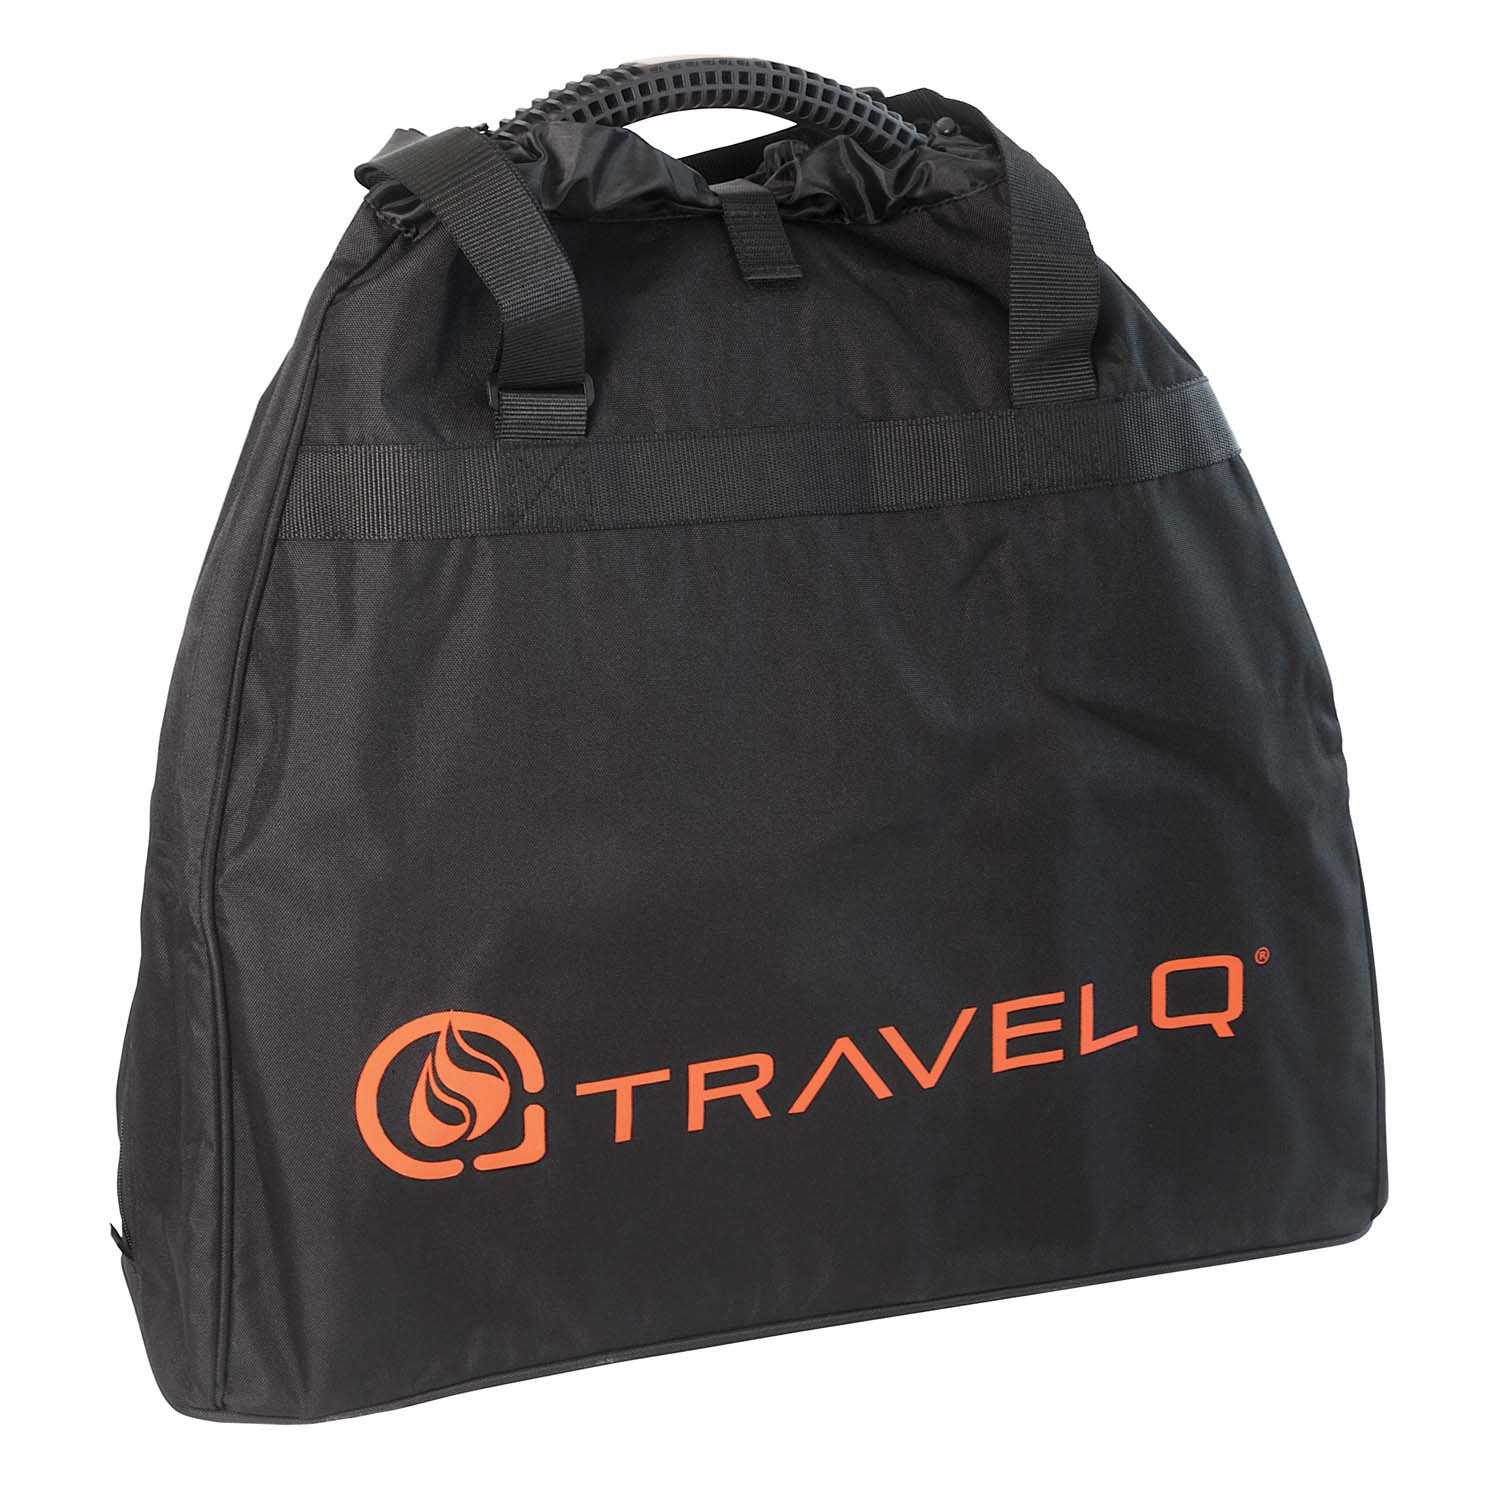 Napoleon Carry Bag for Travel Q - 63025